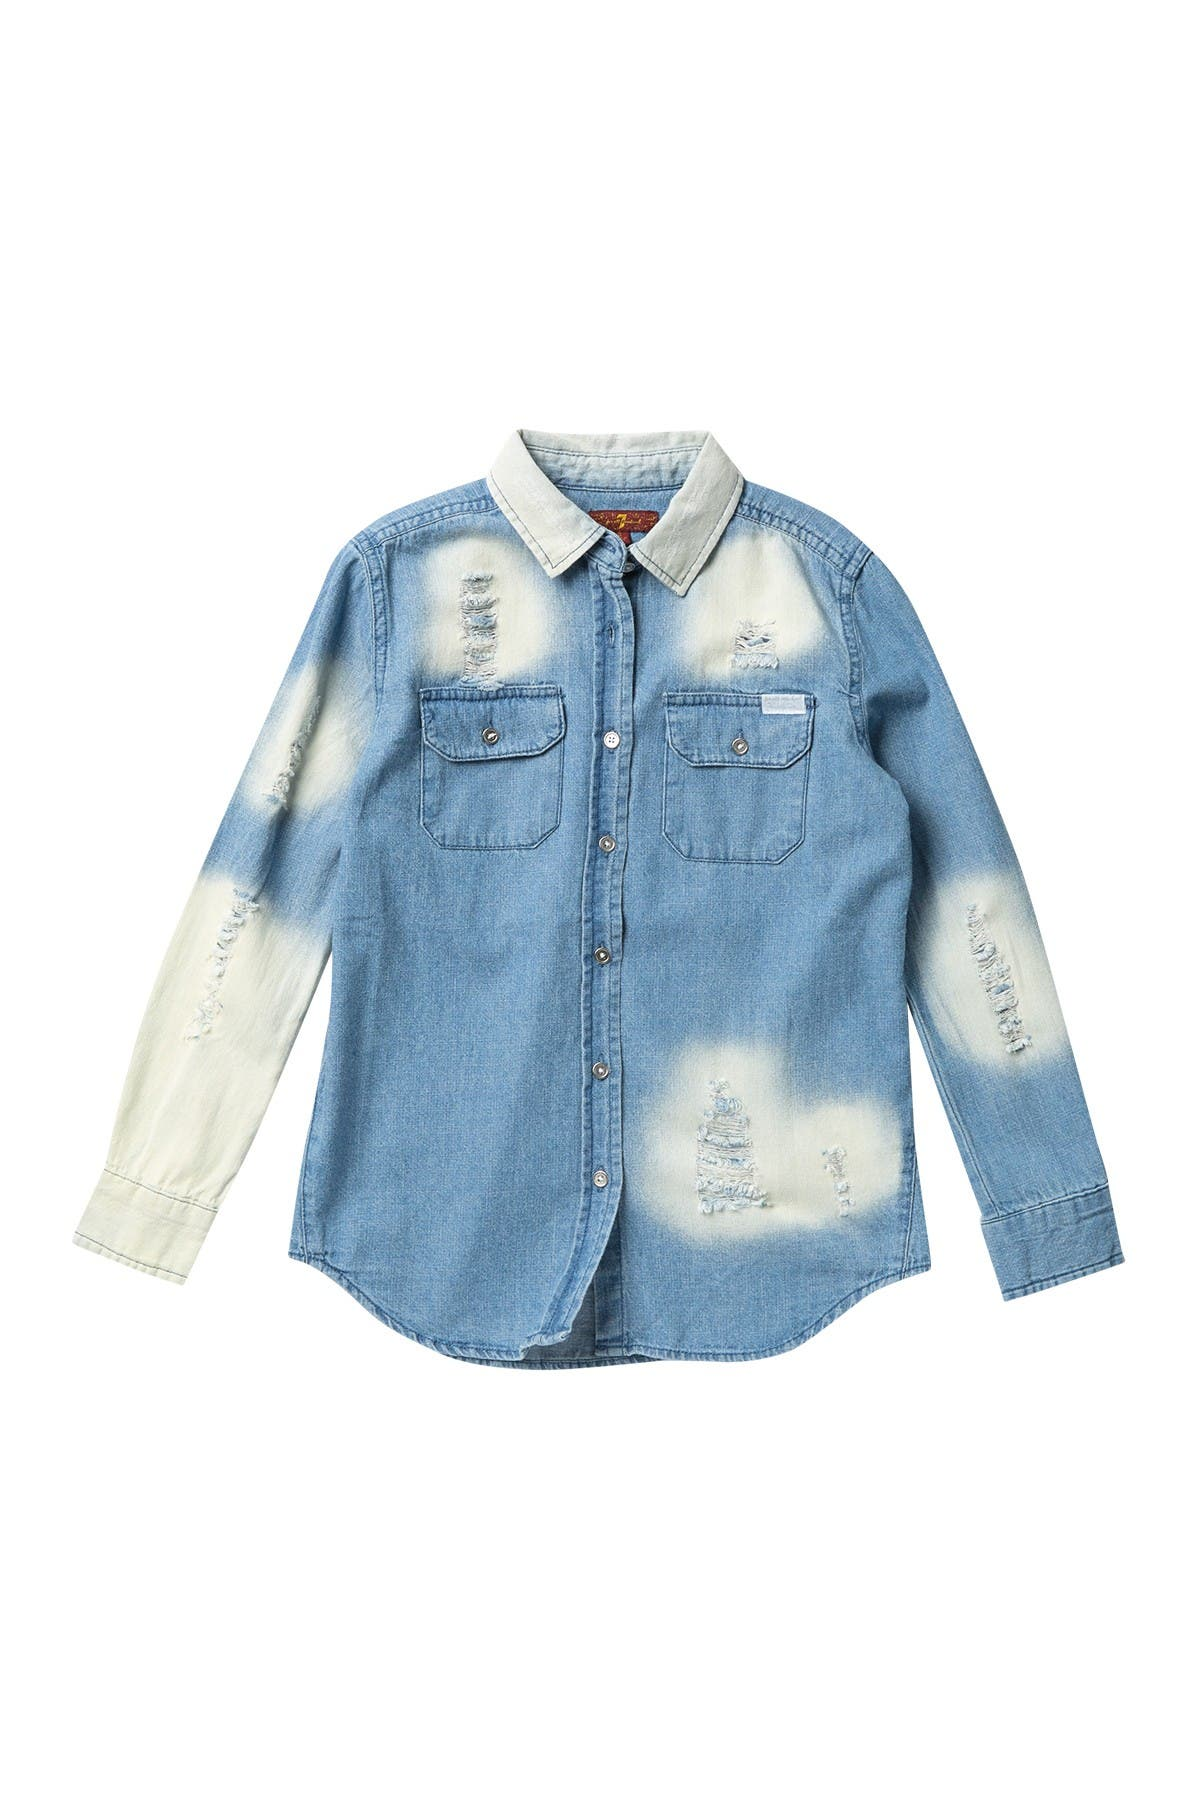 Image of 7 For All Mankind Oversized Denim Shirt